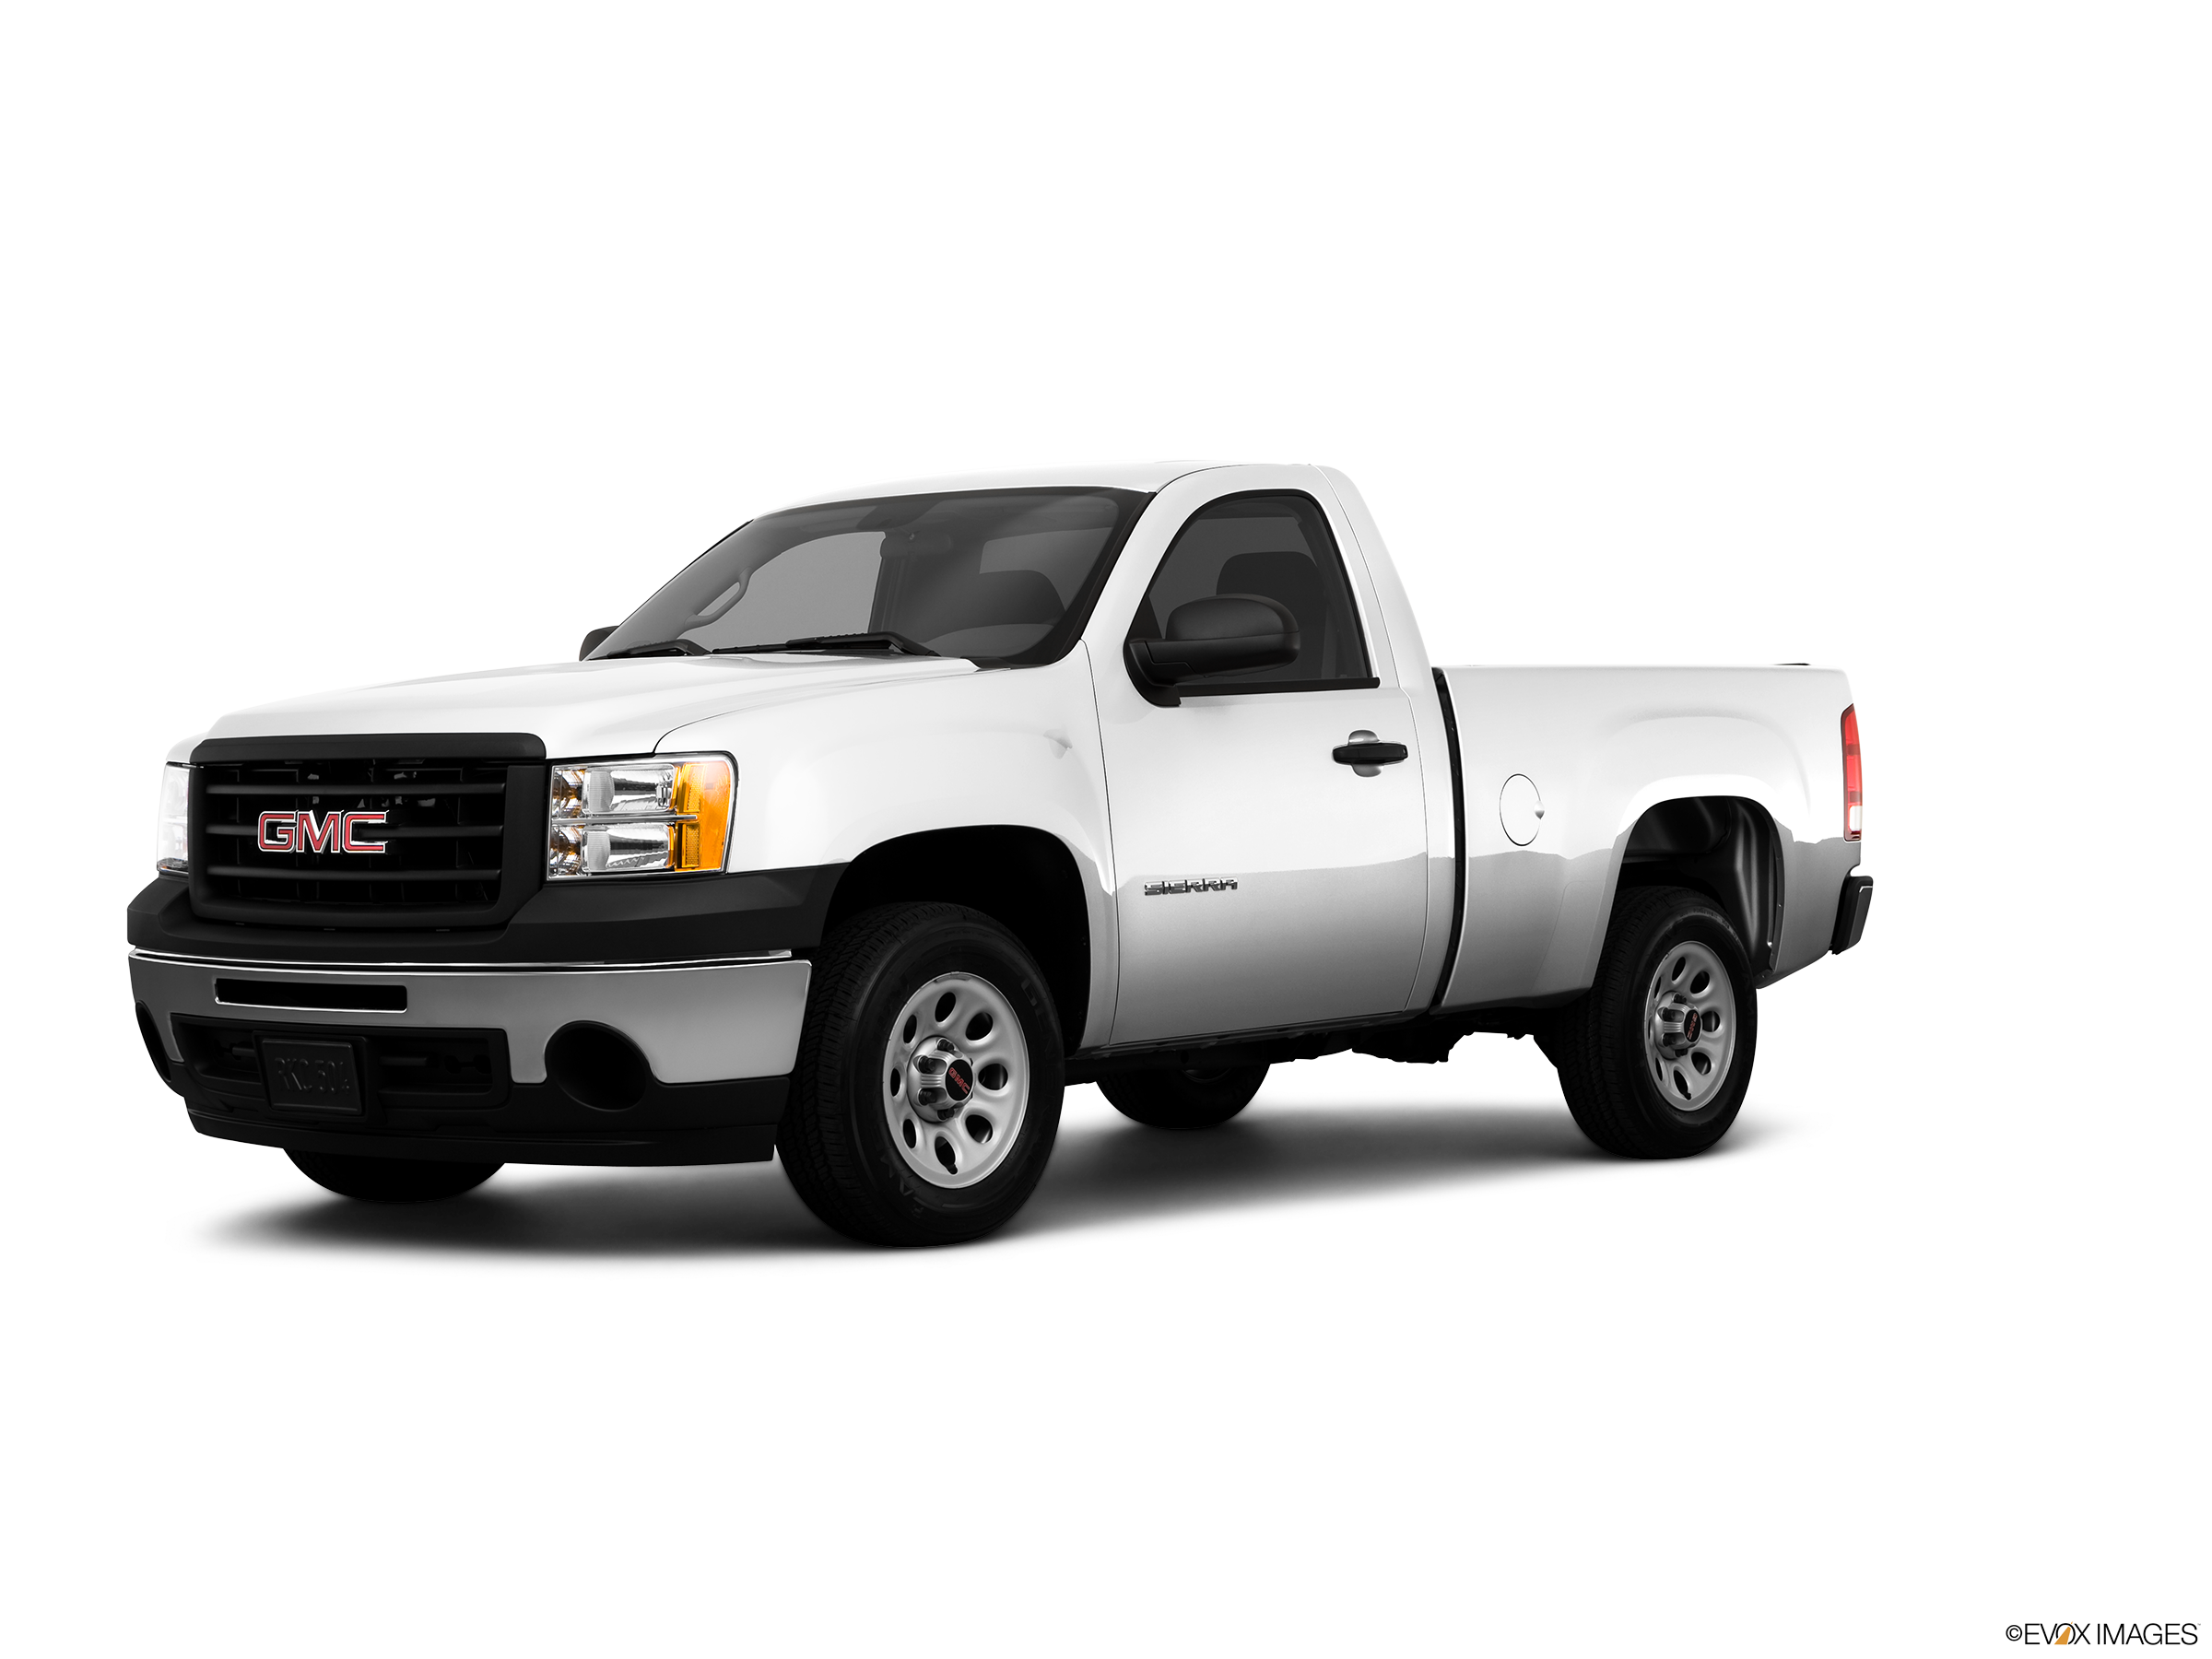 2010 Gmc Sierra 1500 Values Cars For Sale Kelley Blue Book